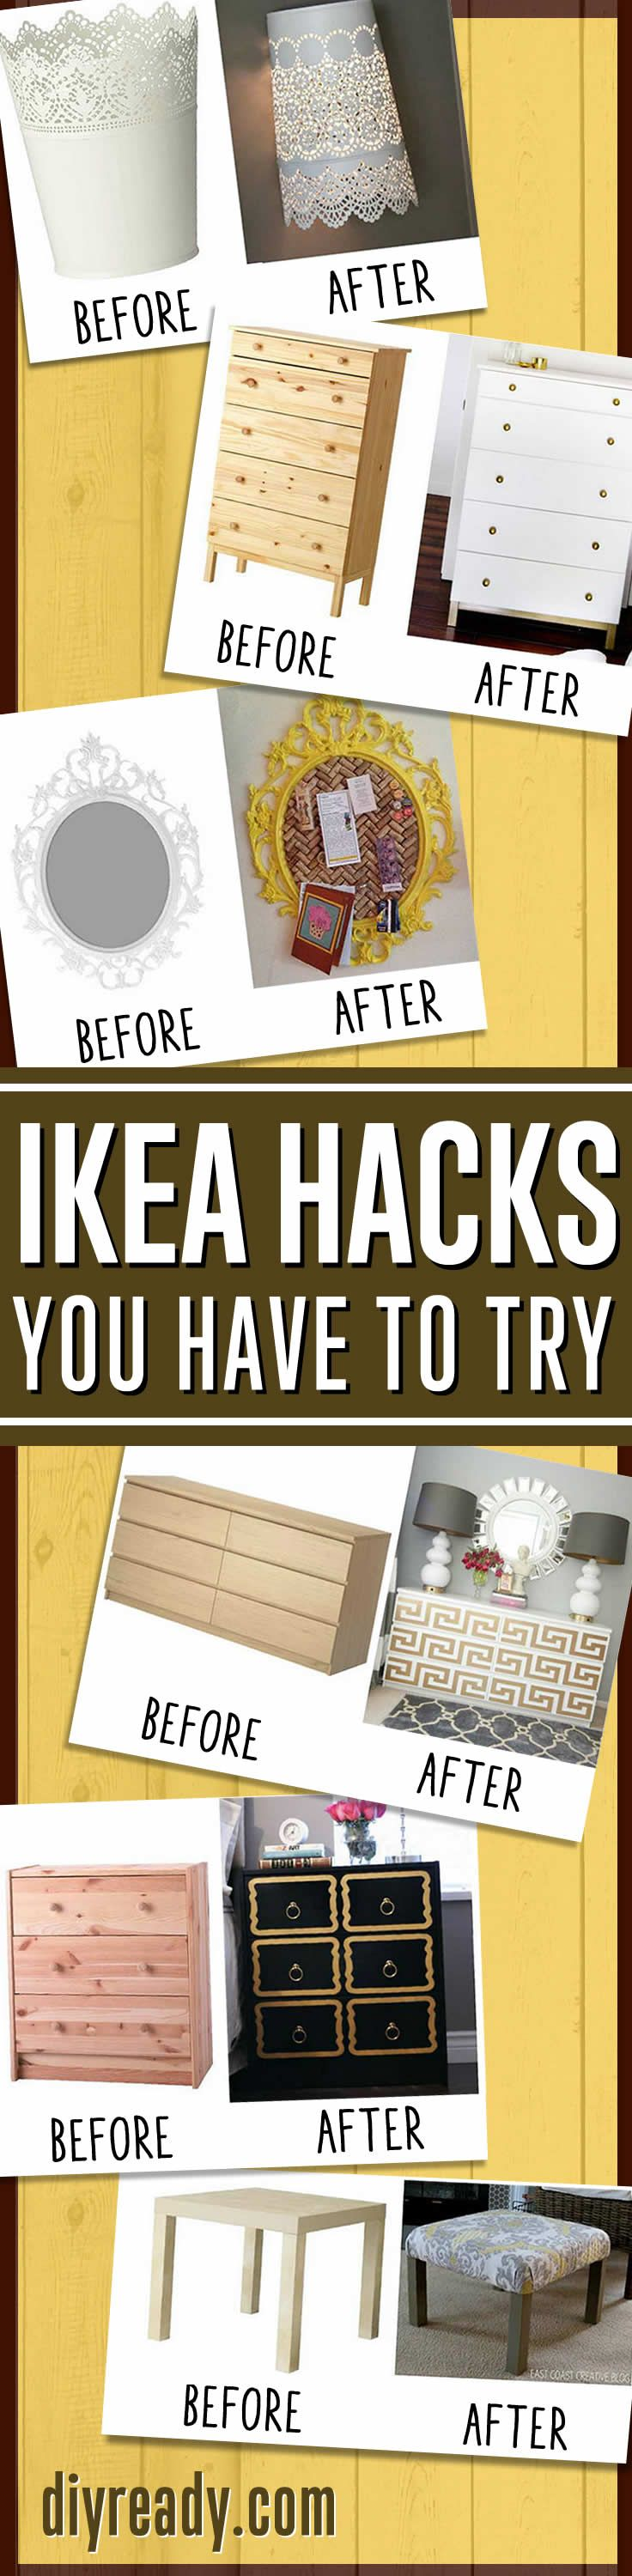 IKEA Hacks you have to see to believe! diyready.com #diy #furniture #diyprojects #ikea